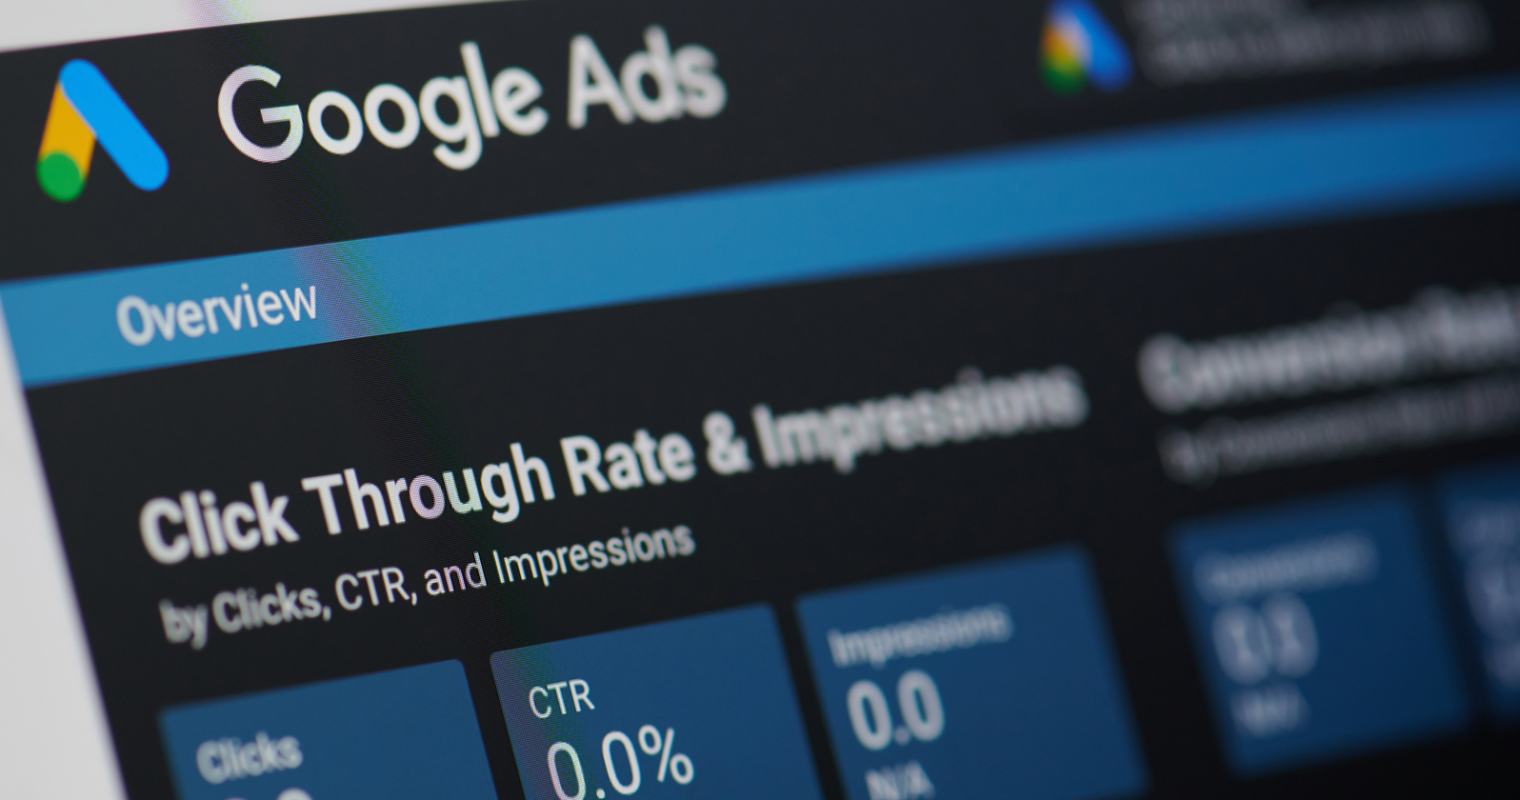 Google Ads is Bringing Click Share to Search Campaigns